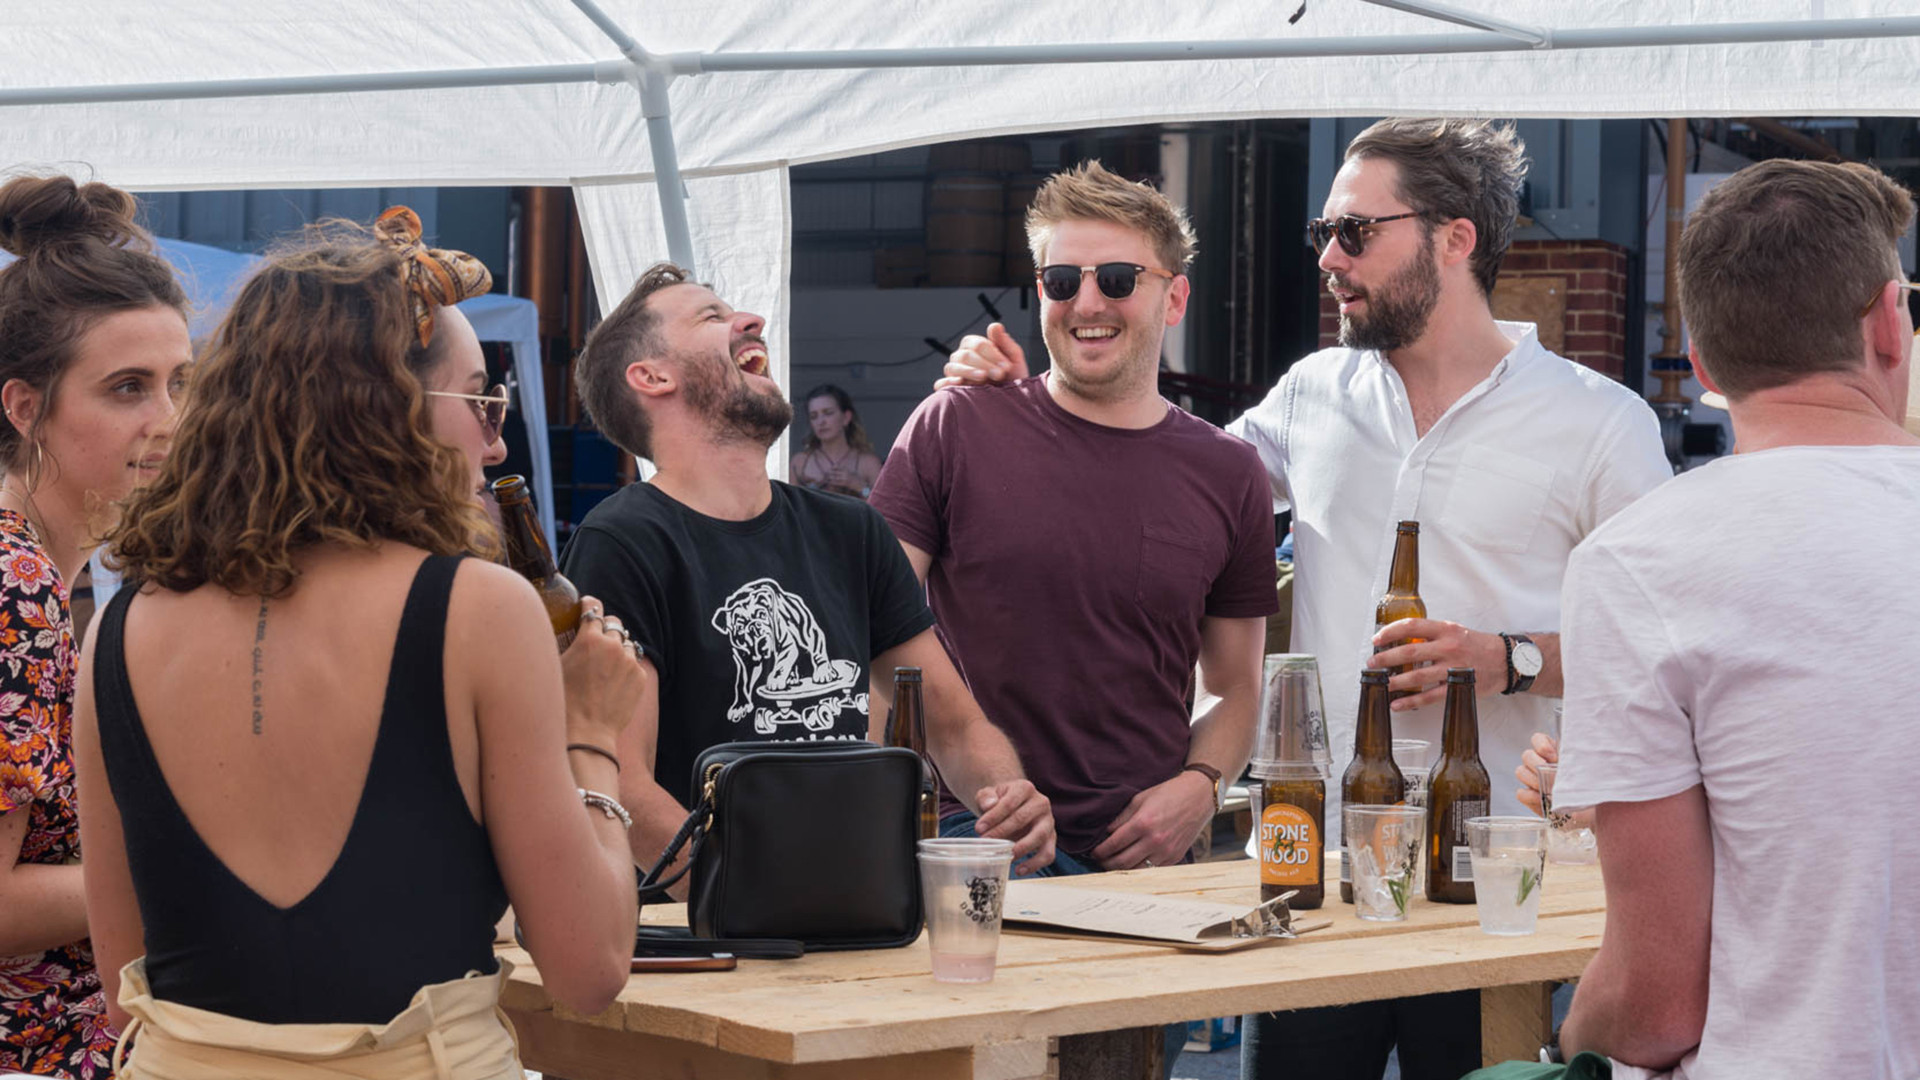 End of Summer Distillery Party at Doghouse Distillery